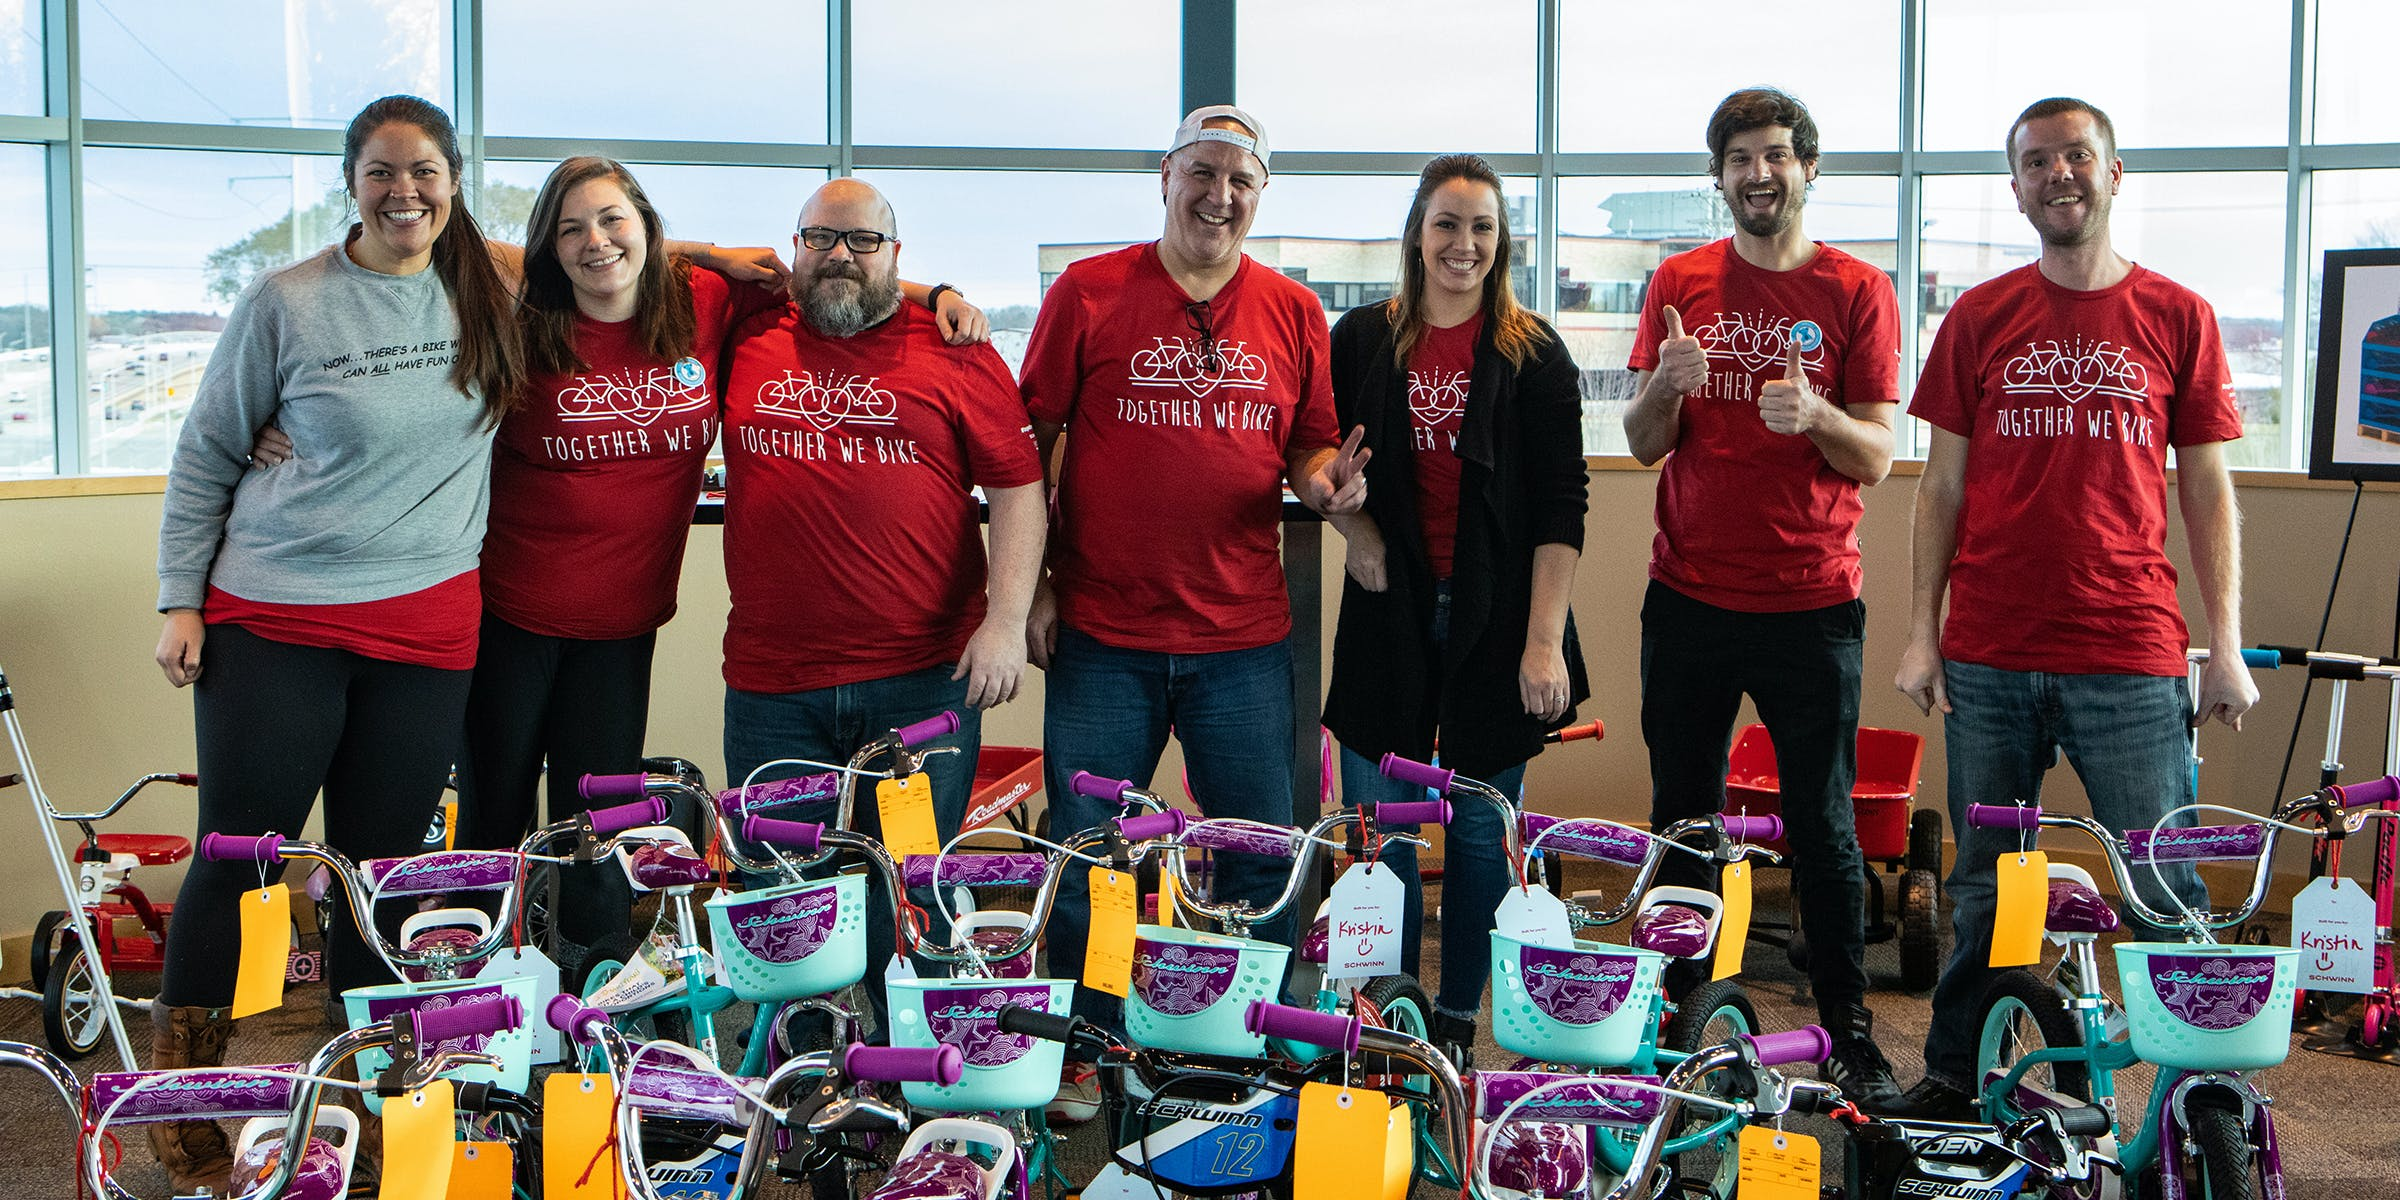 Members of the non-profit Together We Rise with donated bicycles.